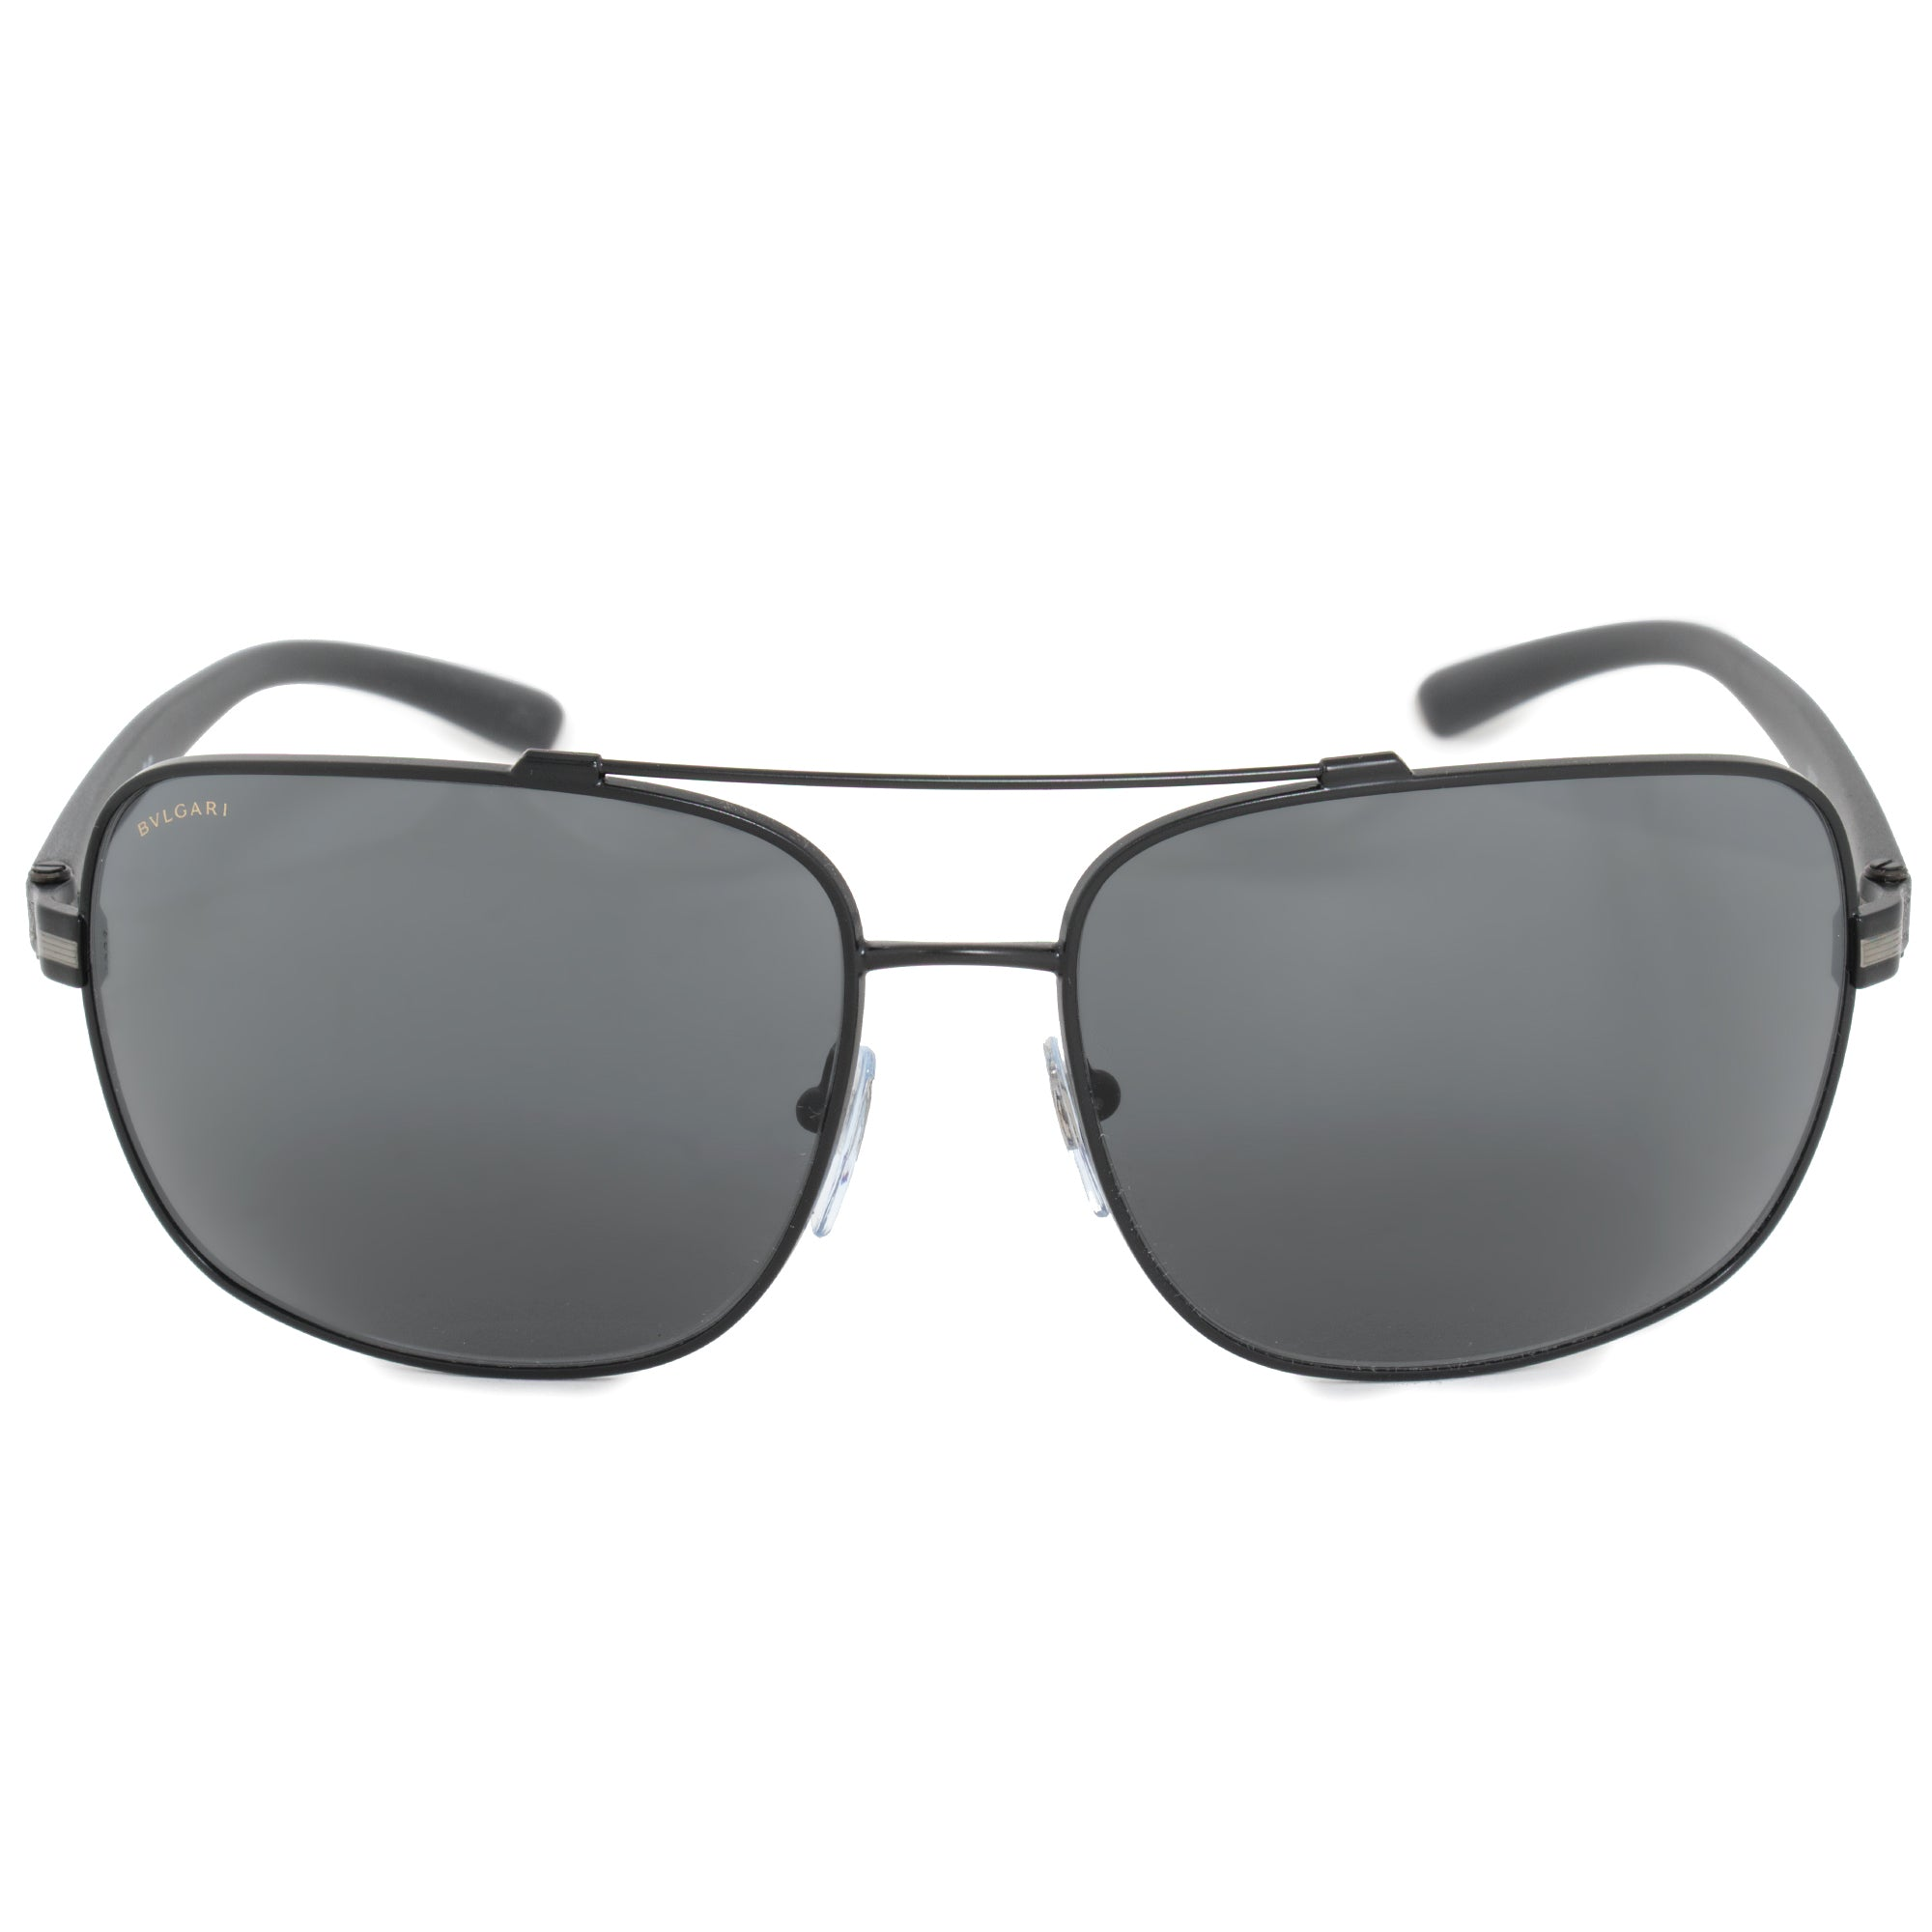 Bvlgari Aviator Sunglasses BV5038  | Matte Black Metal Frame | Gray Lenses